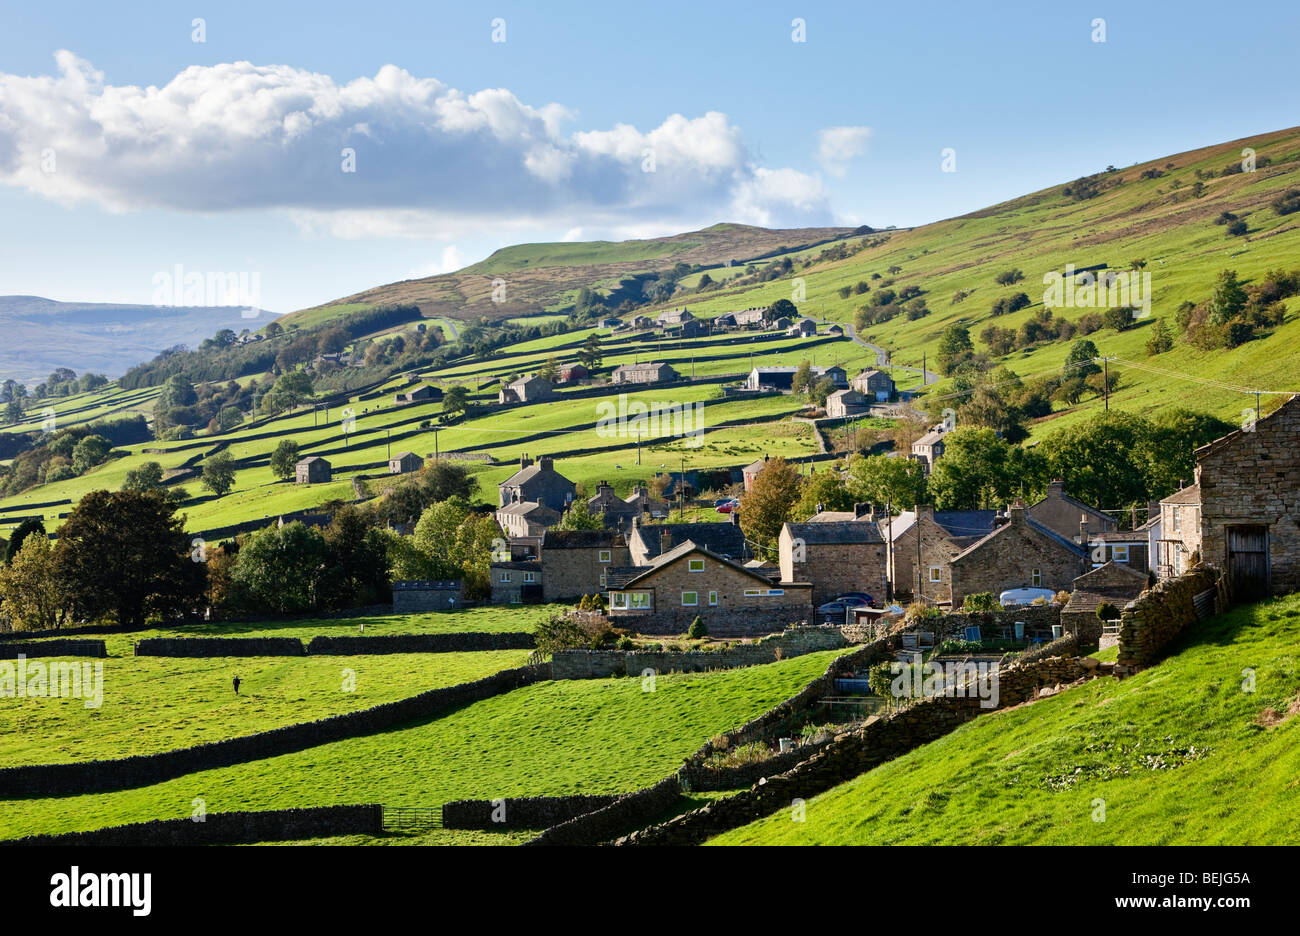 Yorkshire Dales village of Gunnerside in Swaledale, England, North Yorkshire, English countryside, UK - Stock Image